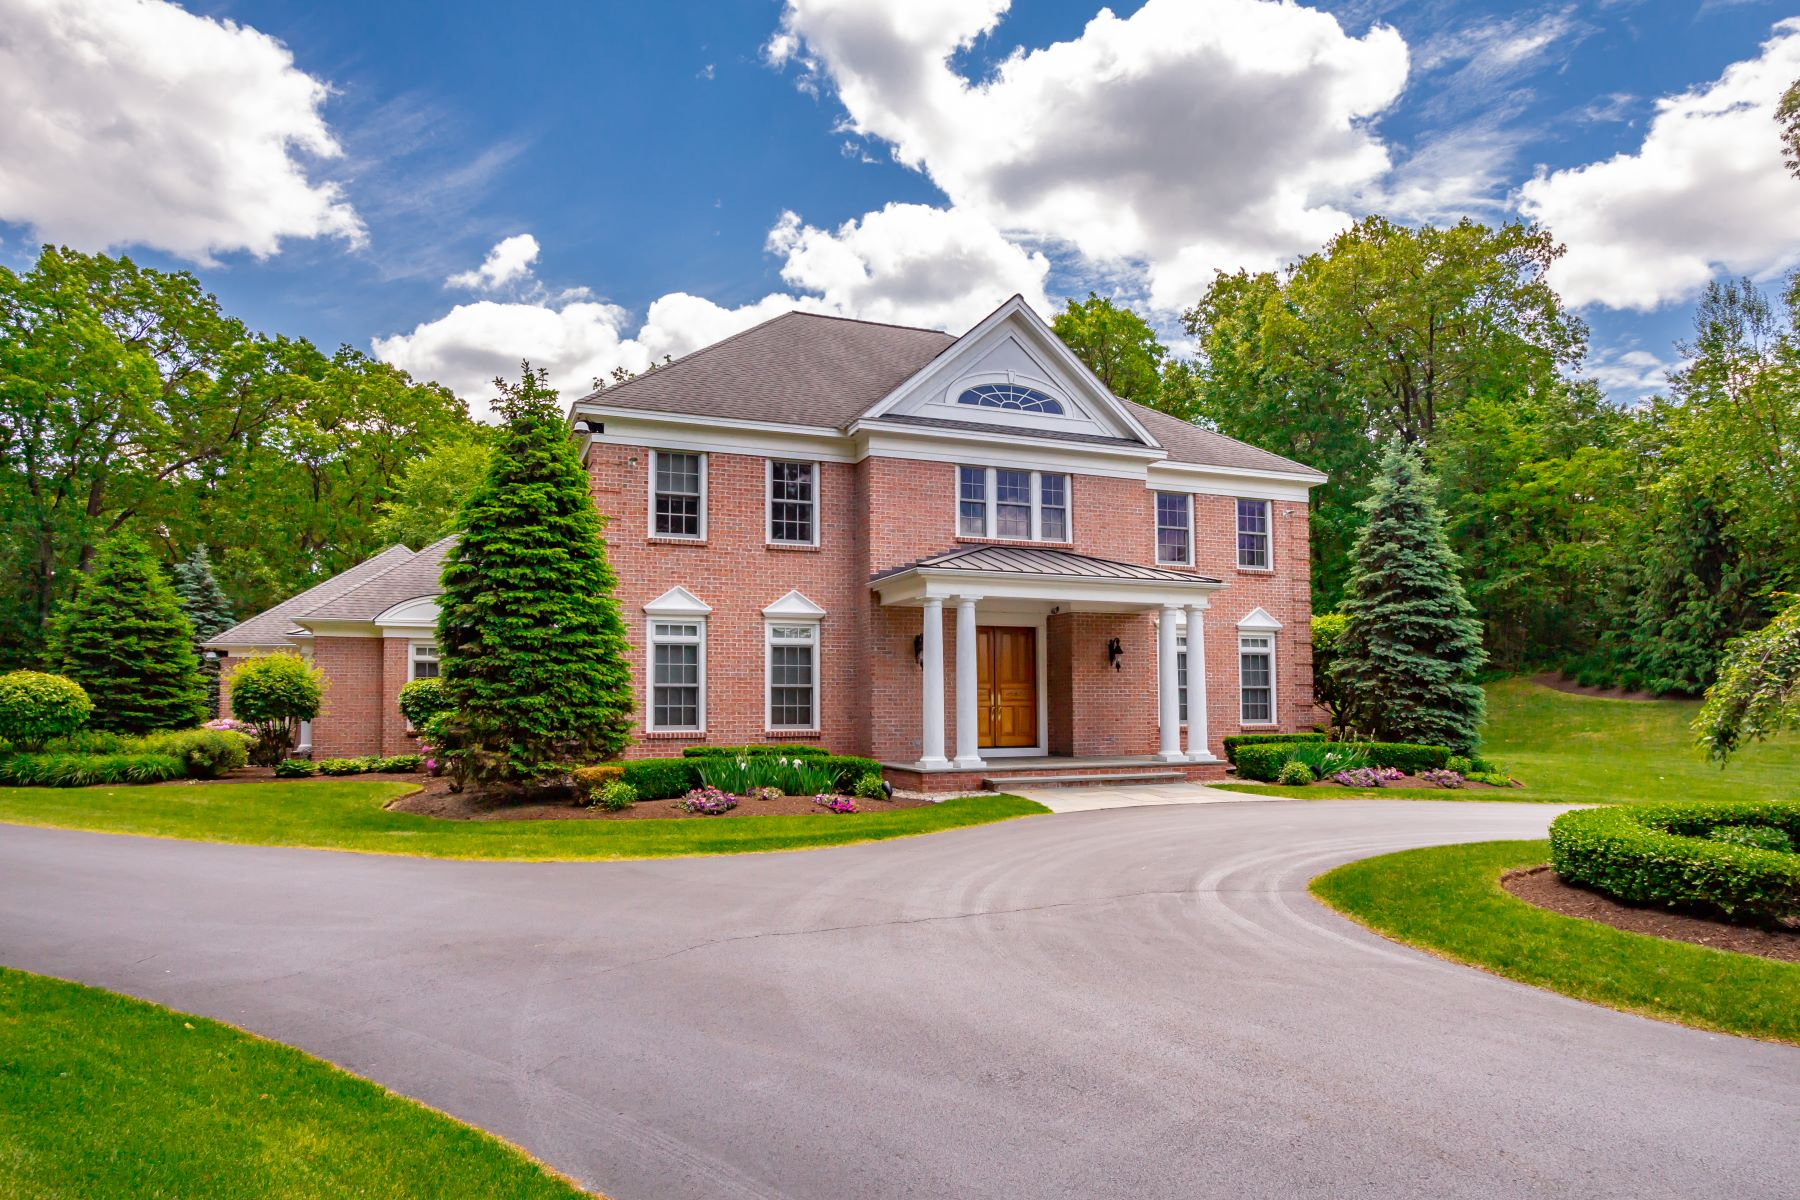 Single Family Homes for Active at Well Appointed Custom Estate on 2.6 Acres In The Heart Of Loundonville 13 Taprobane Lane Albany, New York 12211 United States